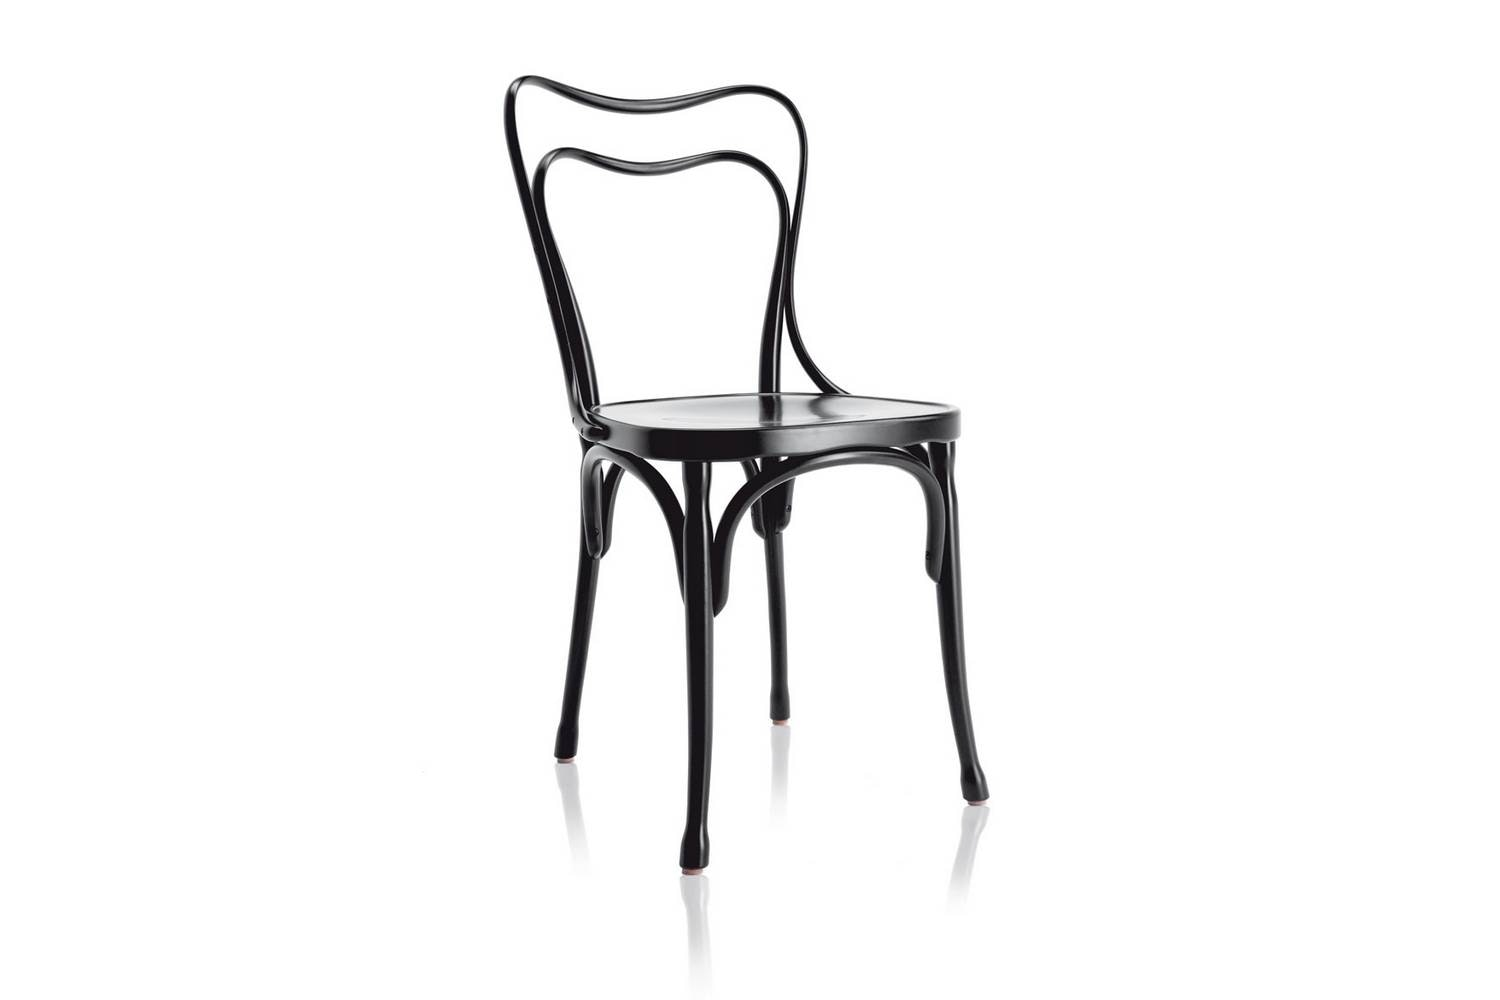 Loos Cafe Museum Chair By Adolf Loos For Gebruder Thonet Vienna  # Adolf Loos Muebles